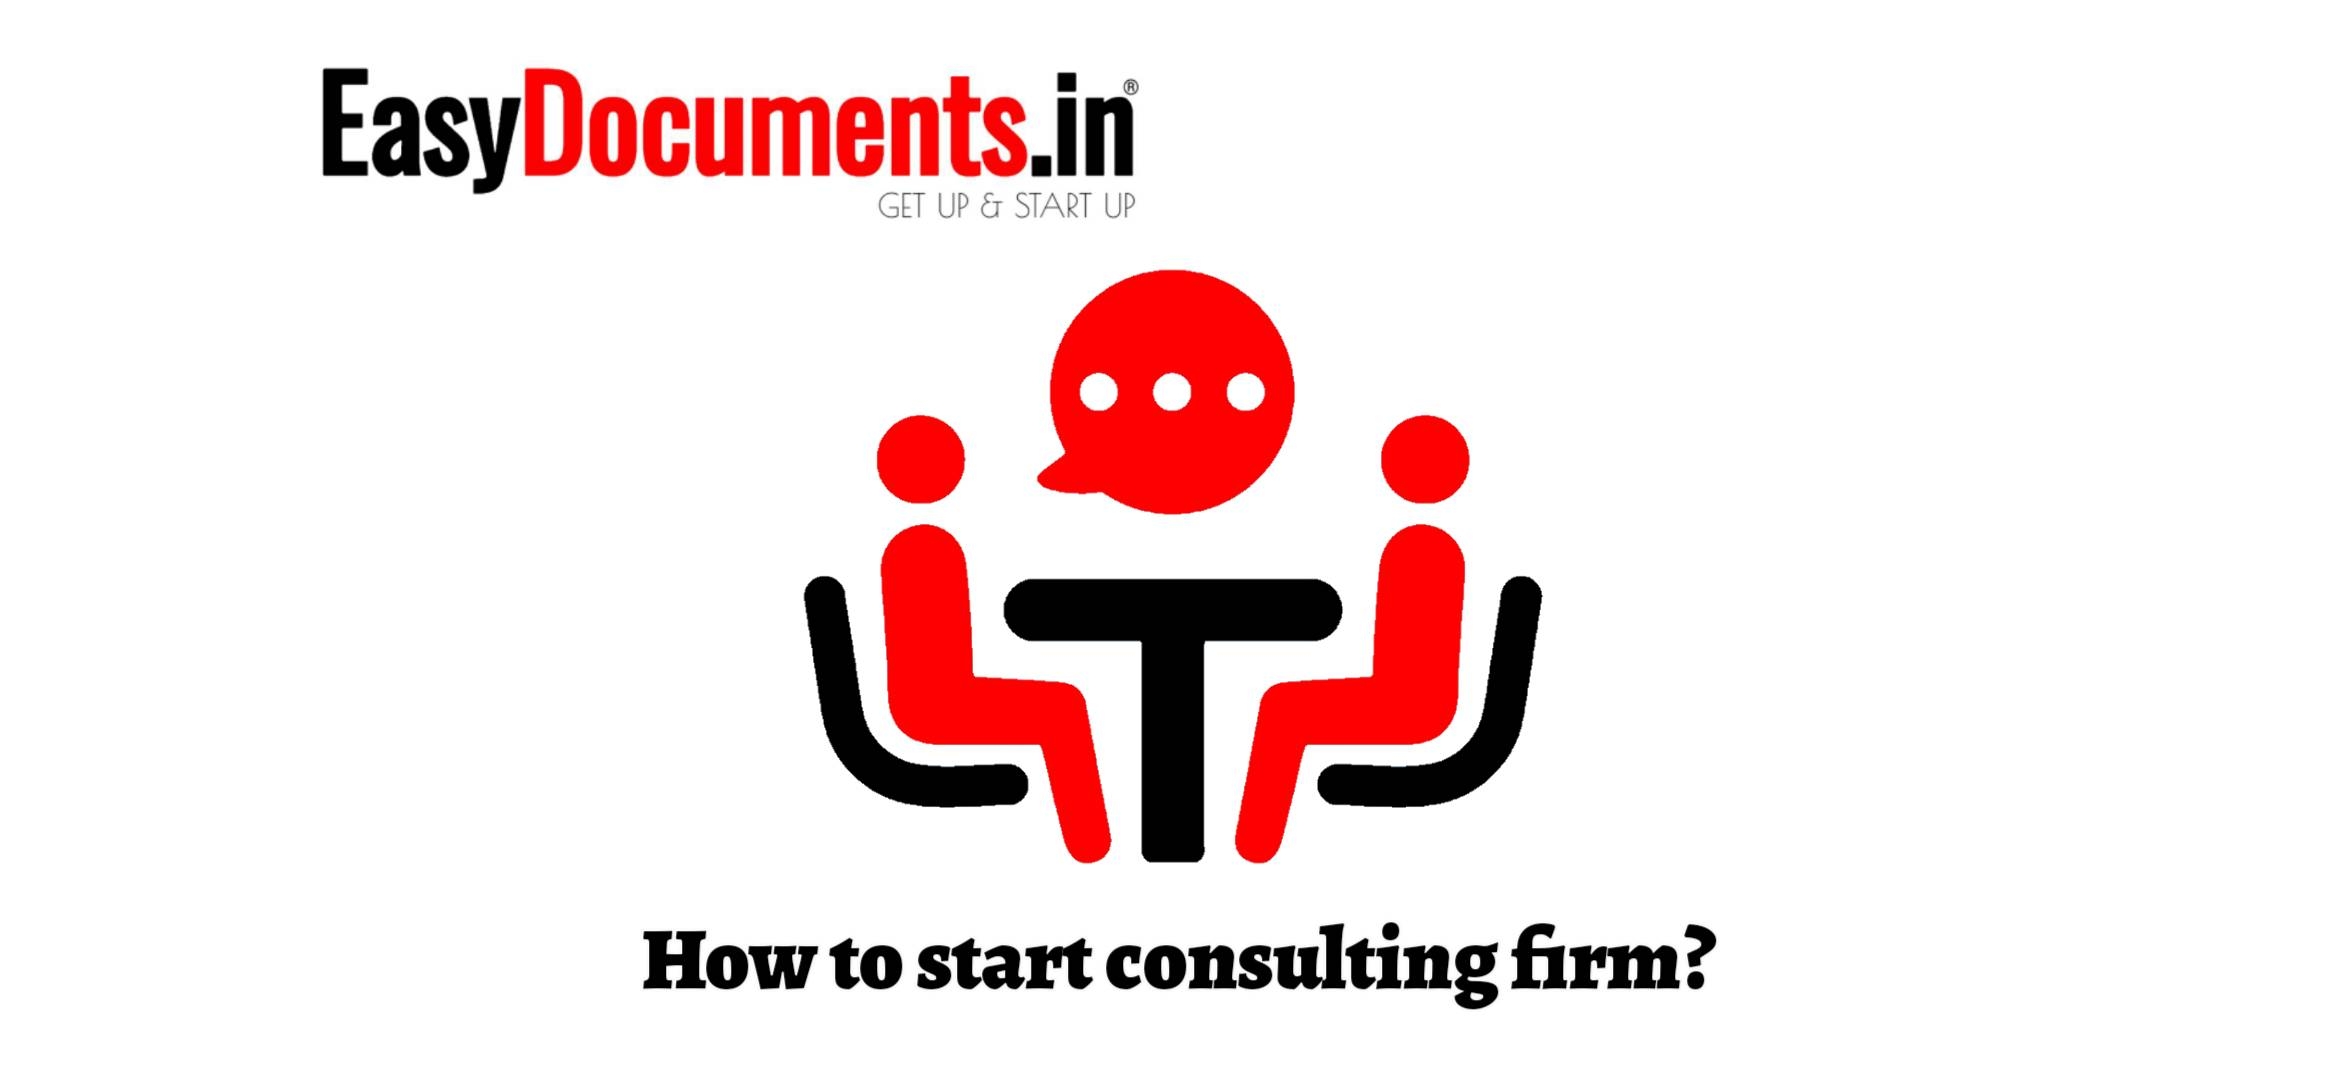 HOW TO START CONSULTING FIRM